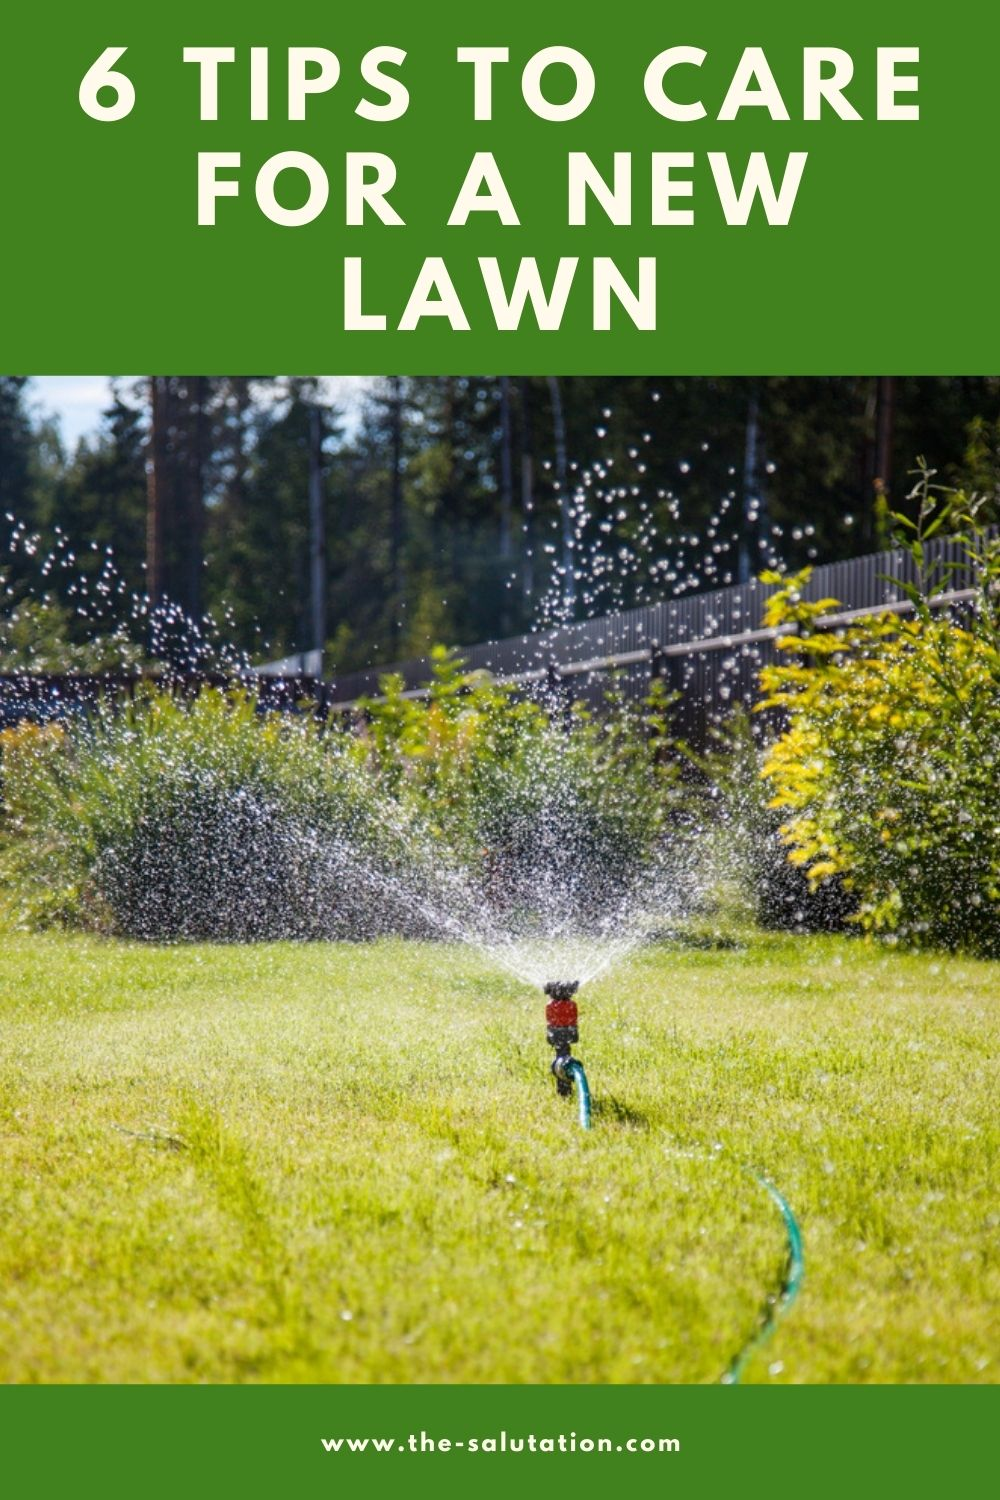 6 Tips to Care for a New Lawn 2